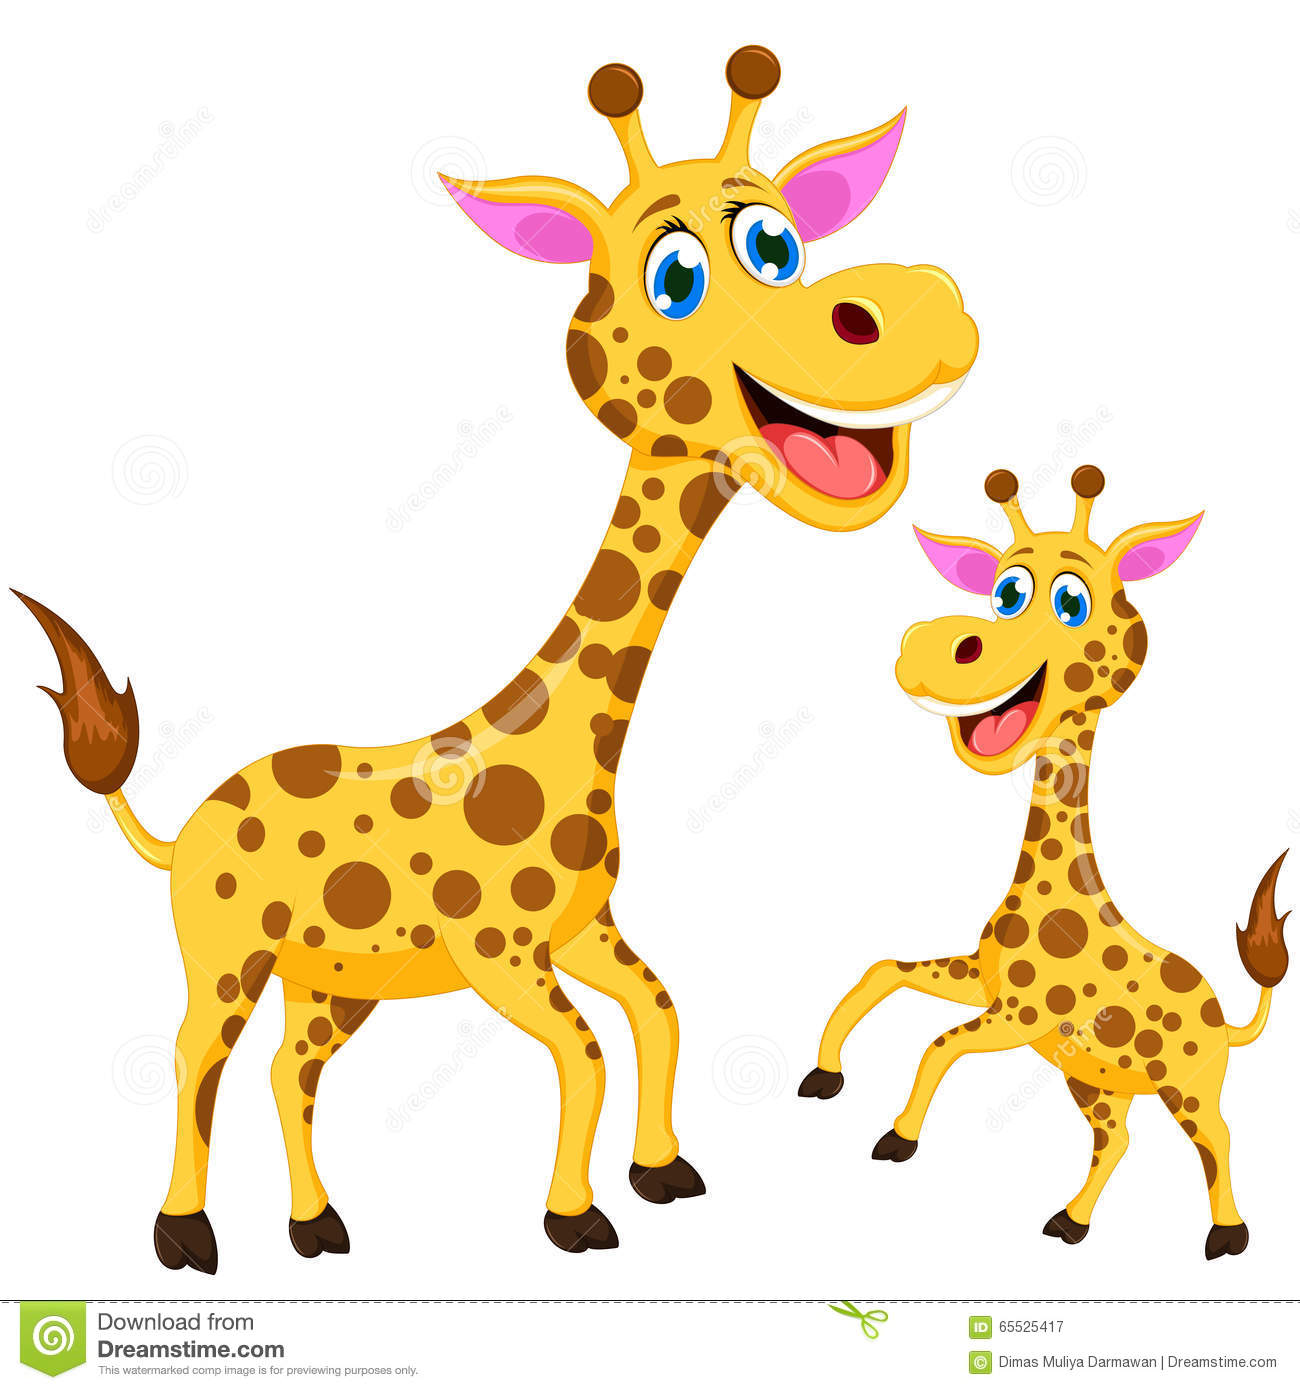 Happy cartoon giraffe stock illustration. Illustration of ...